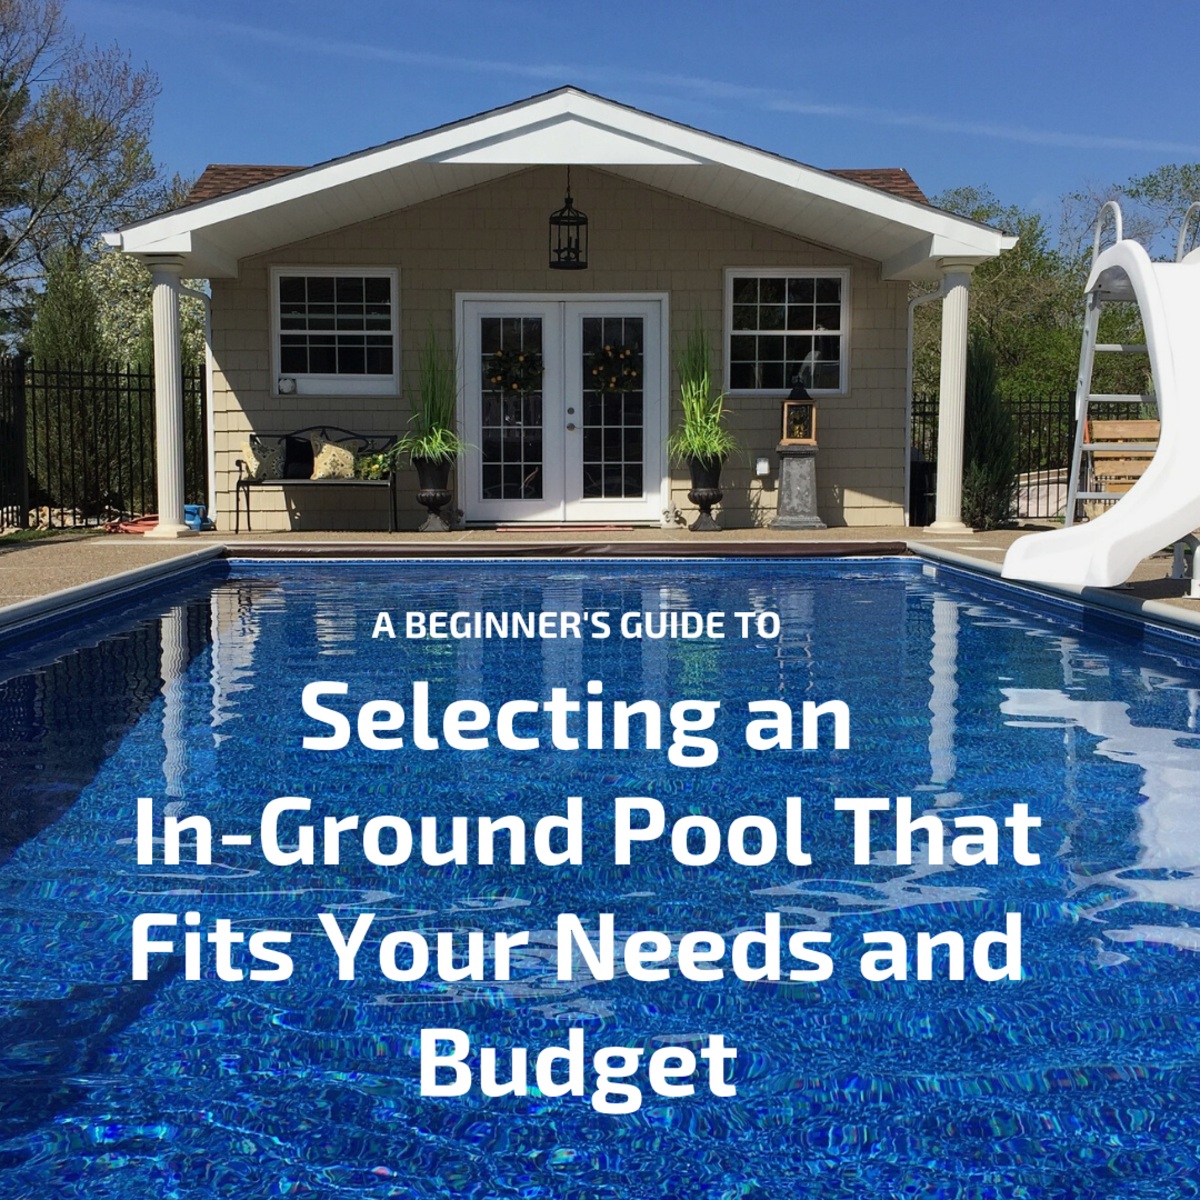 Thinking of installing an in-ground pool? Well, the first thing you need to do is determine what shape and size you are looking for and what your budget is.